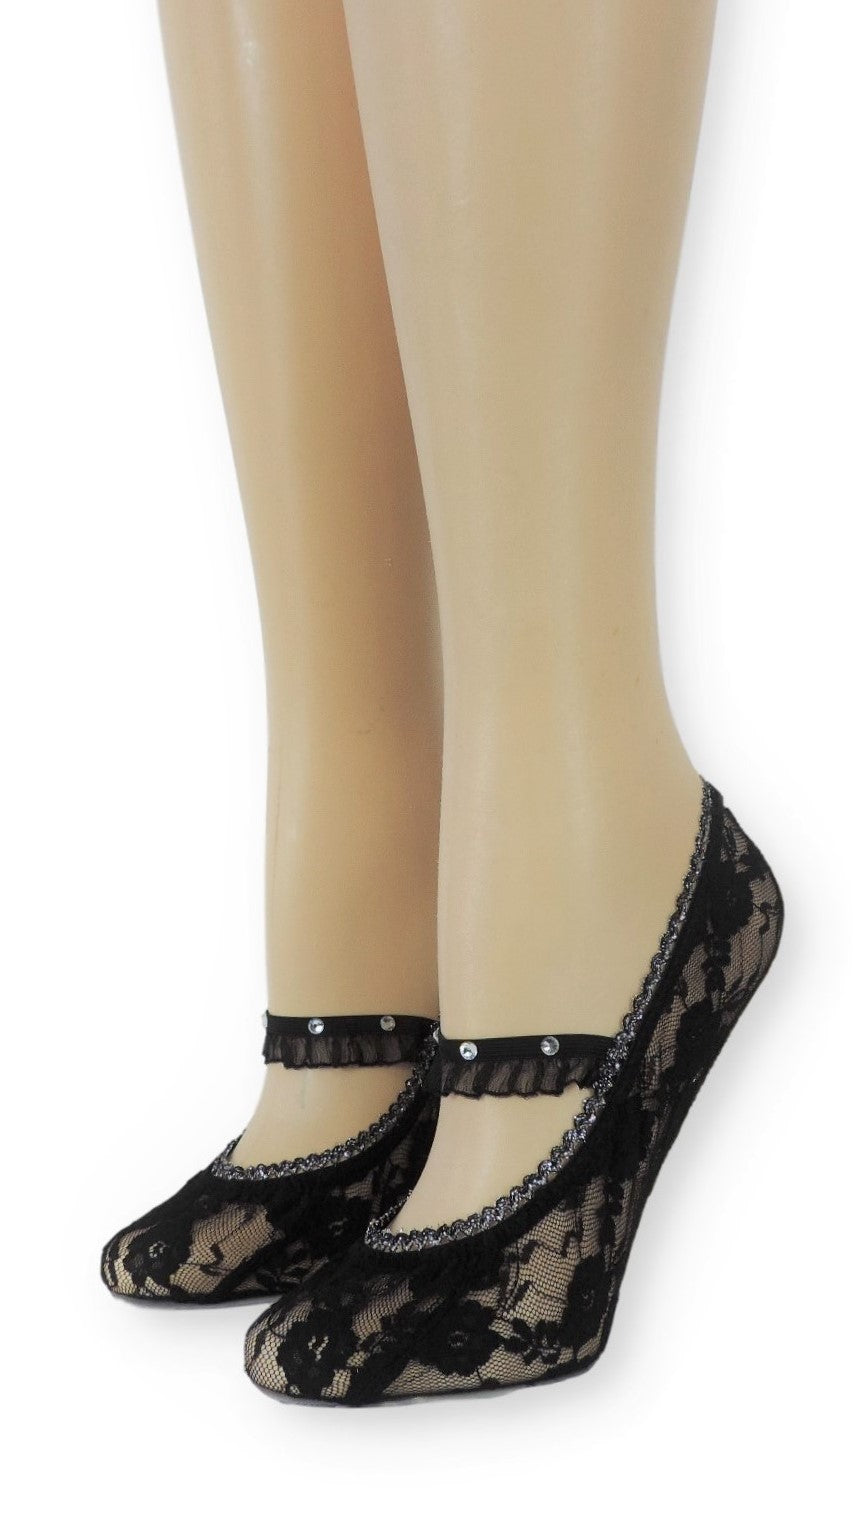 Black Ankle Mesh Socks with Frill strap - Global Trendz Fashion®